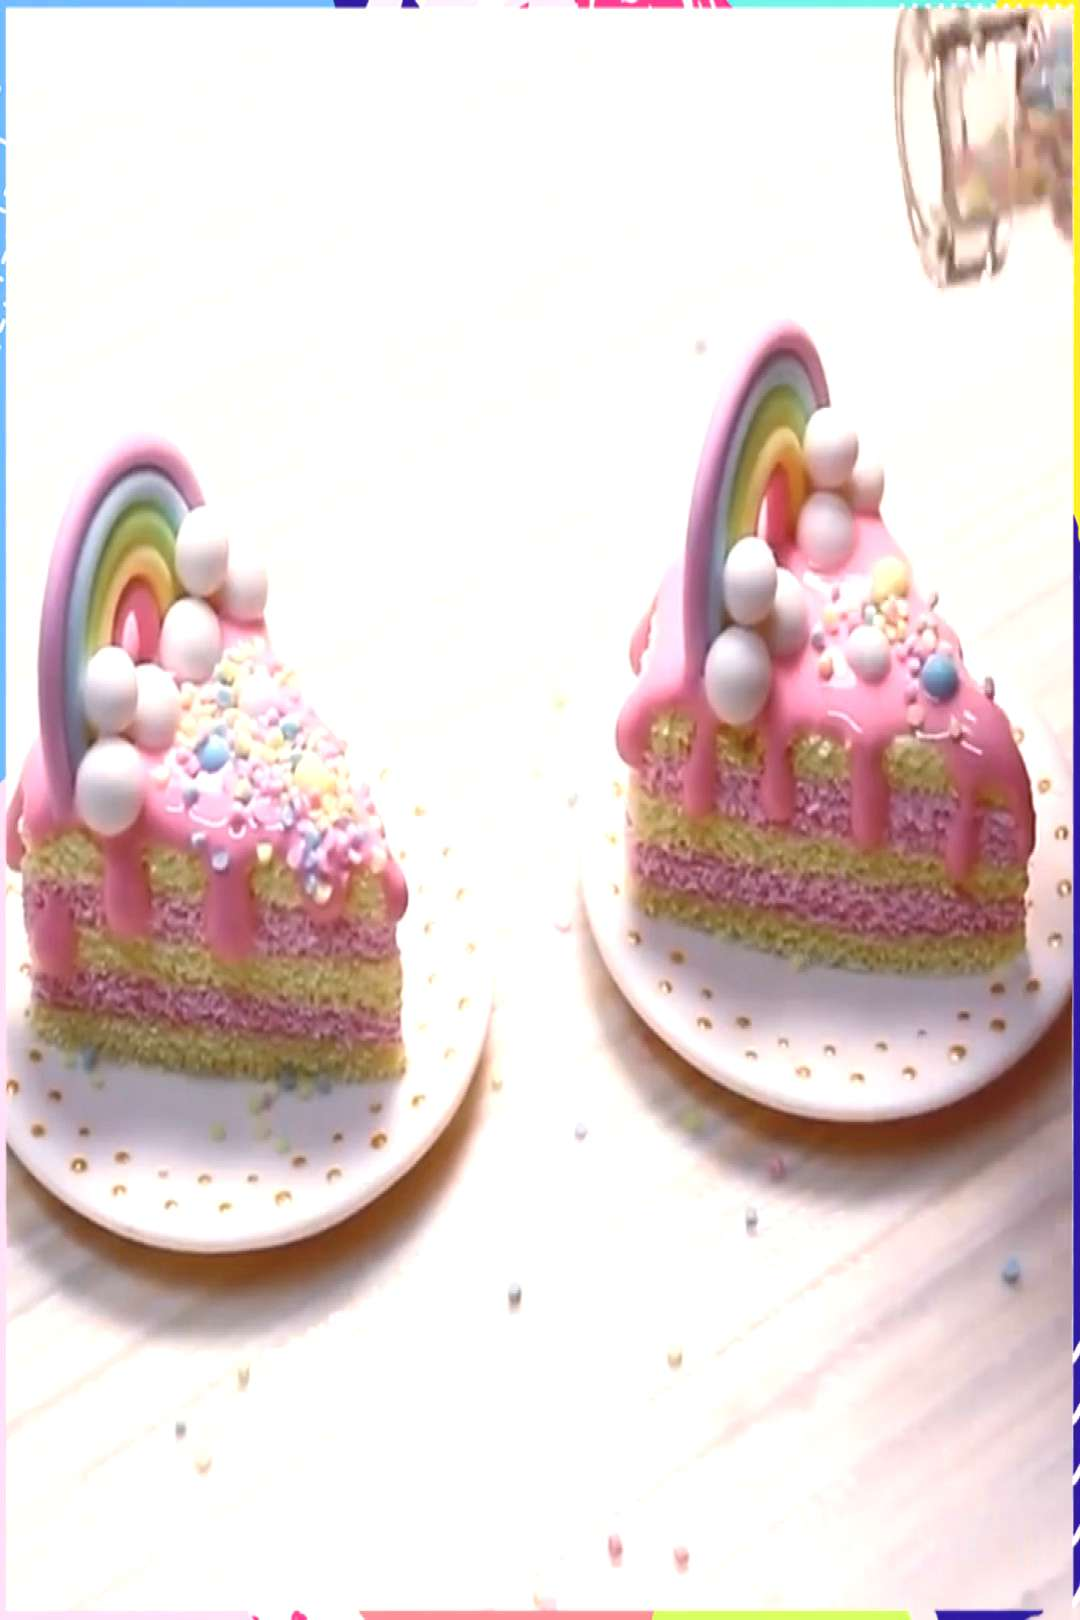 MINIATURE CAKES  Not sure if these can satisfy your sweet tooth, but you can use them as appetizers